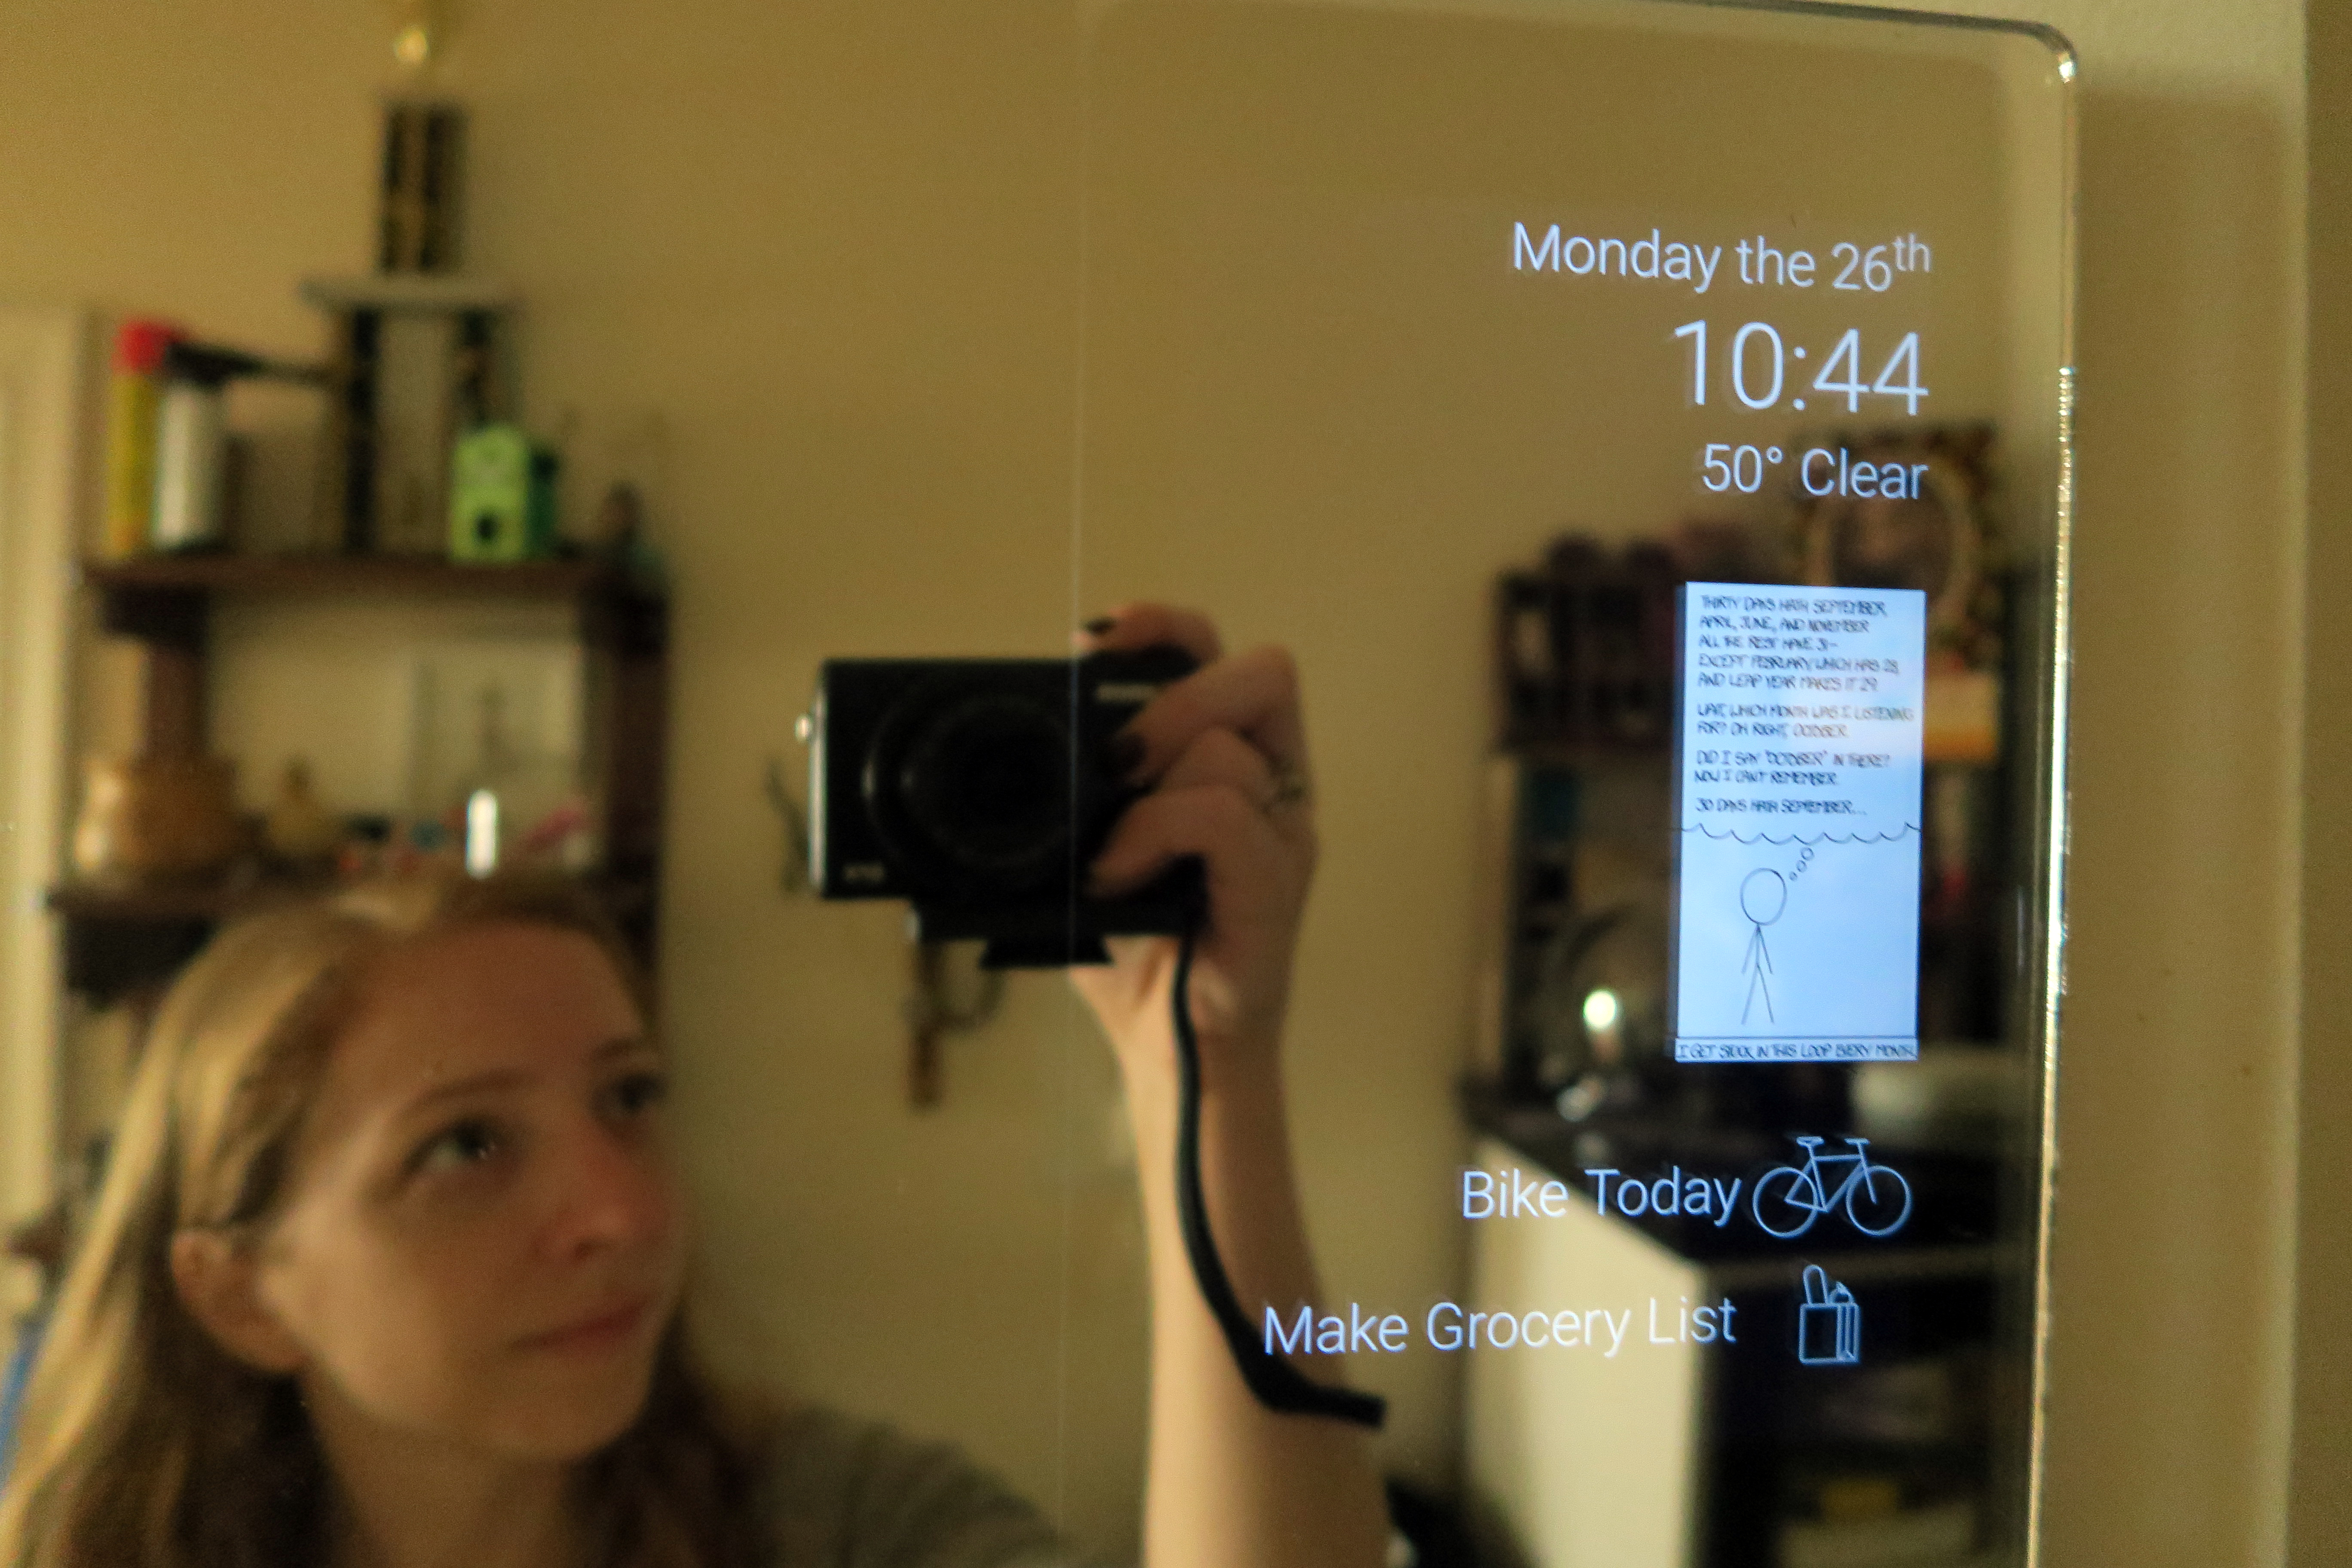 projects_android-mirror-01.jpg